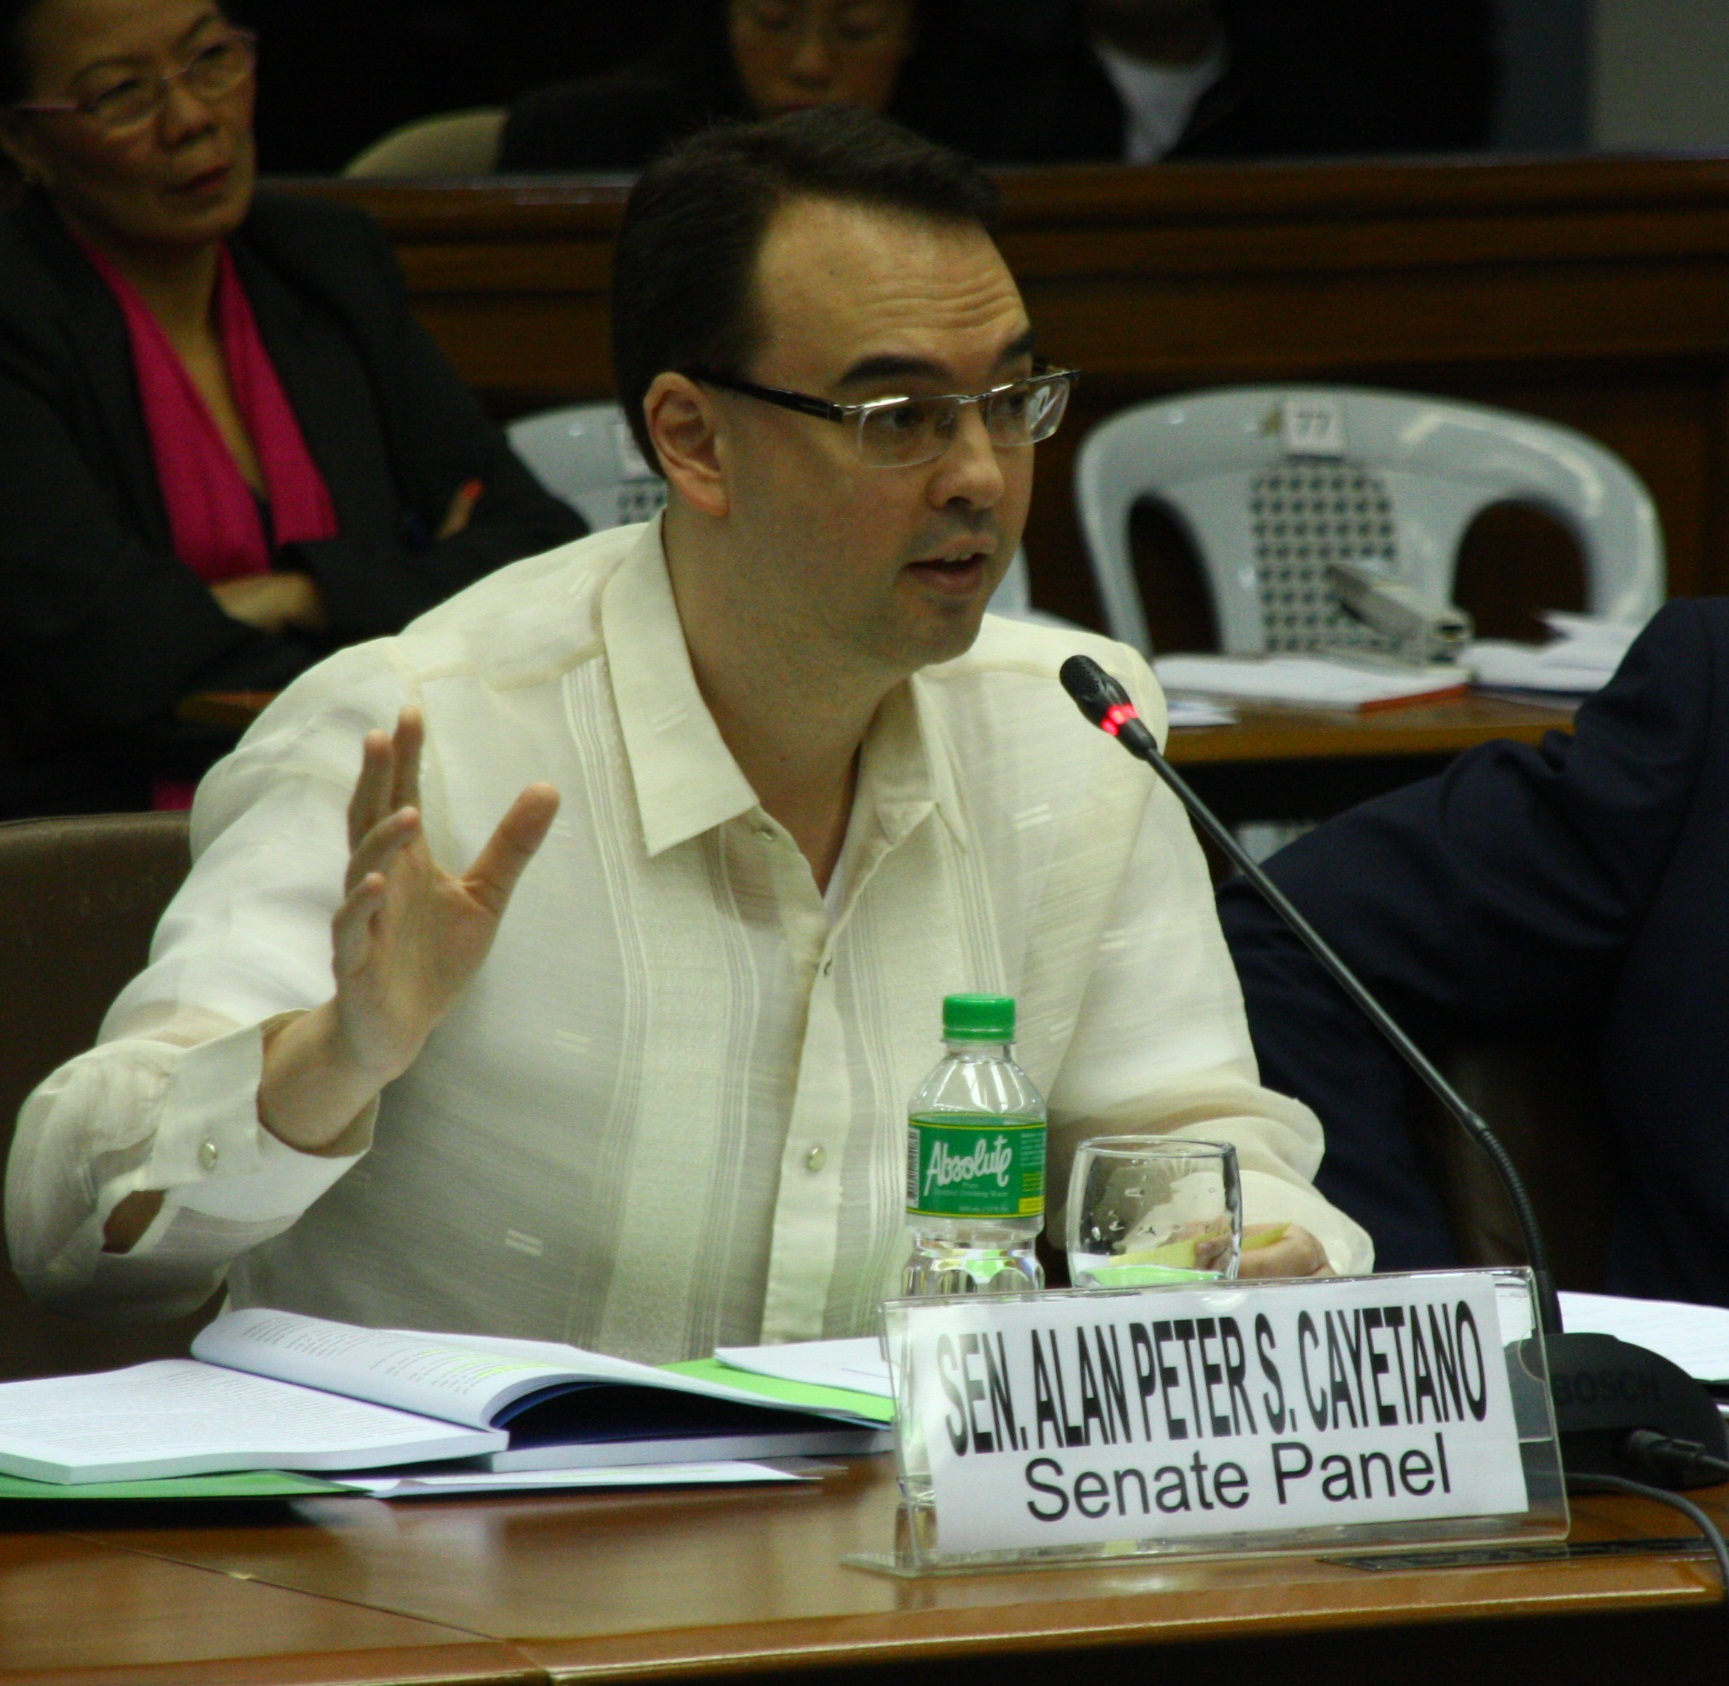 Sen. Alan Peter S. Cayetano during the Joint Congressional Oversight Committee on Automated Election System